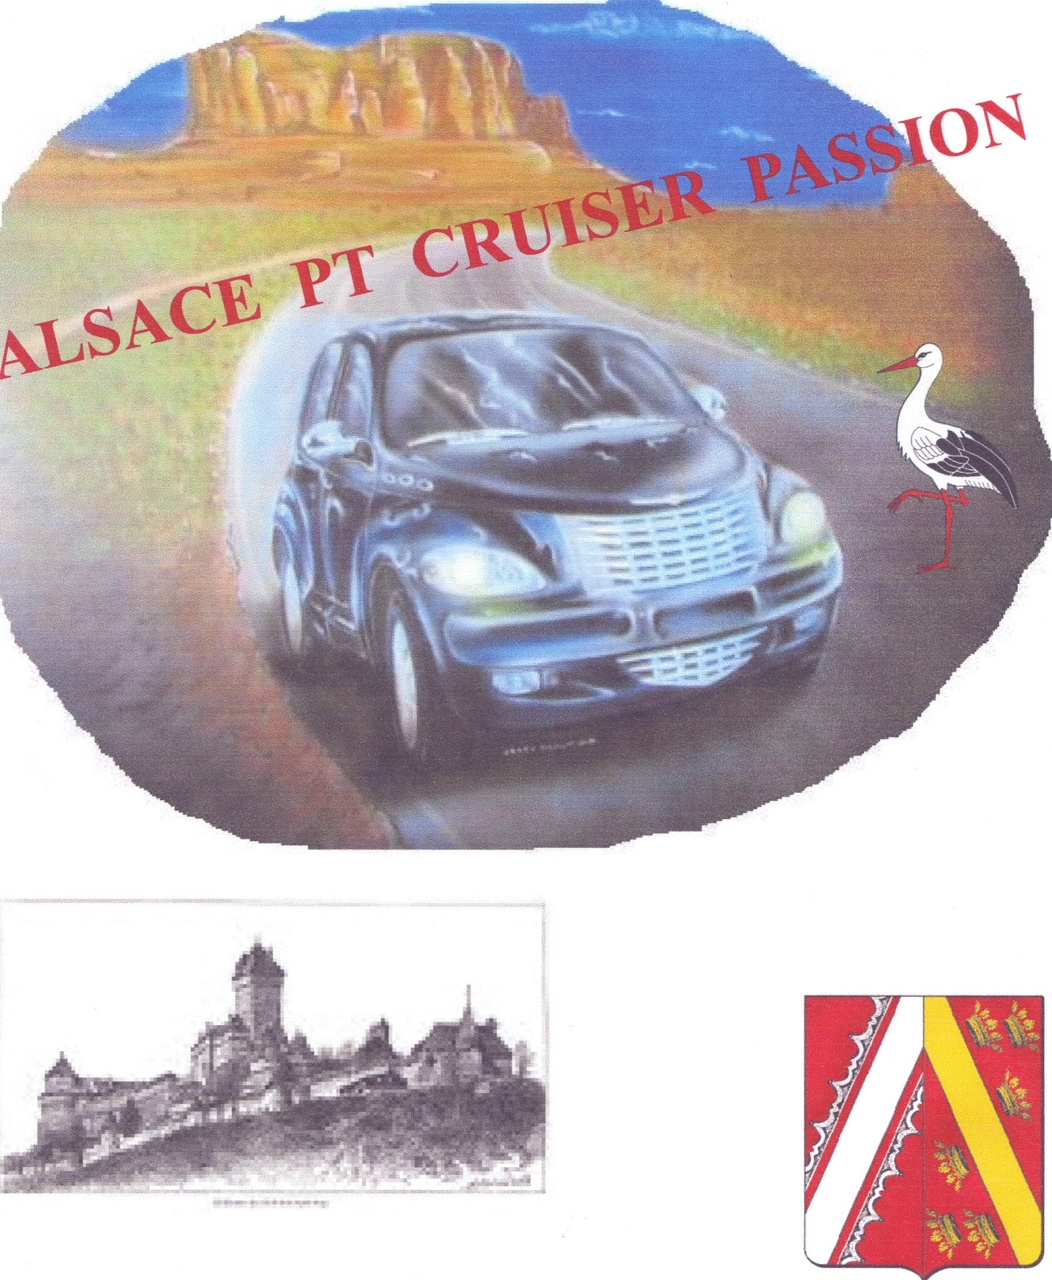 Alsace PT Cruiser Passion